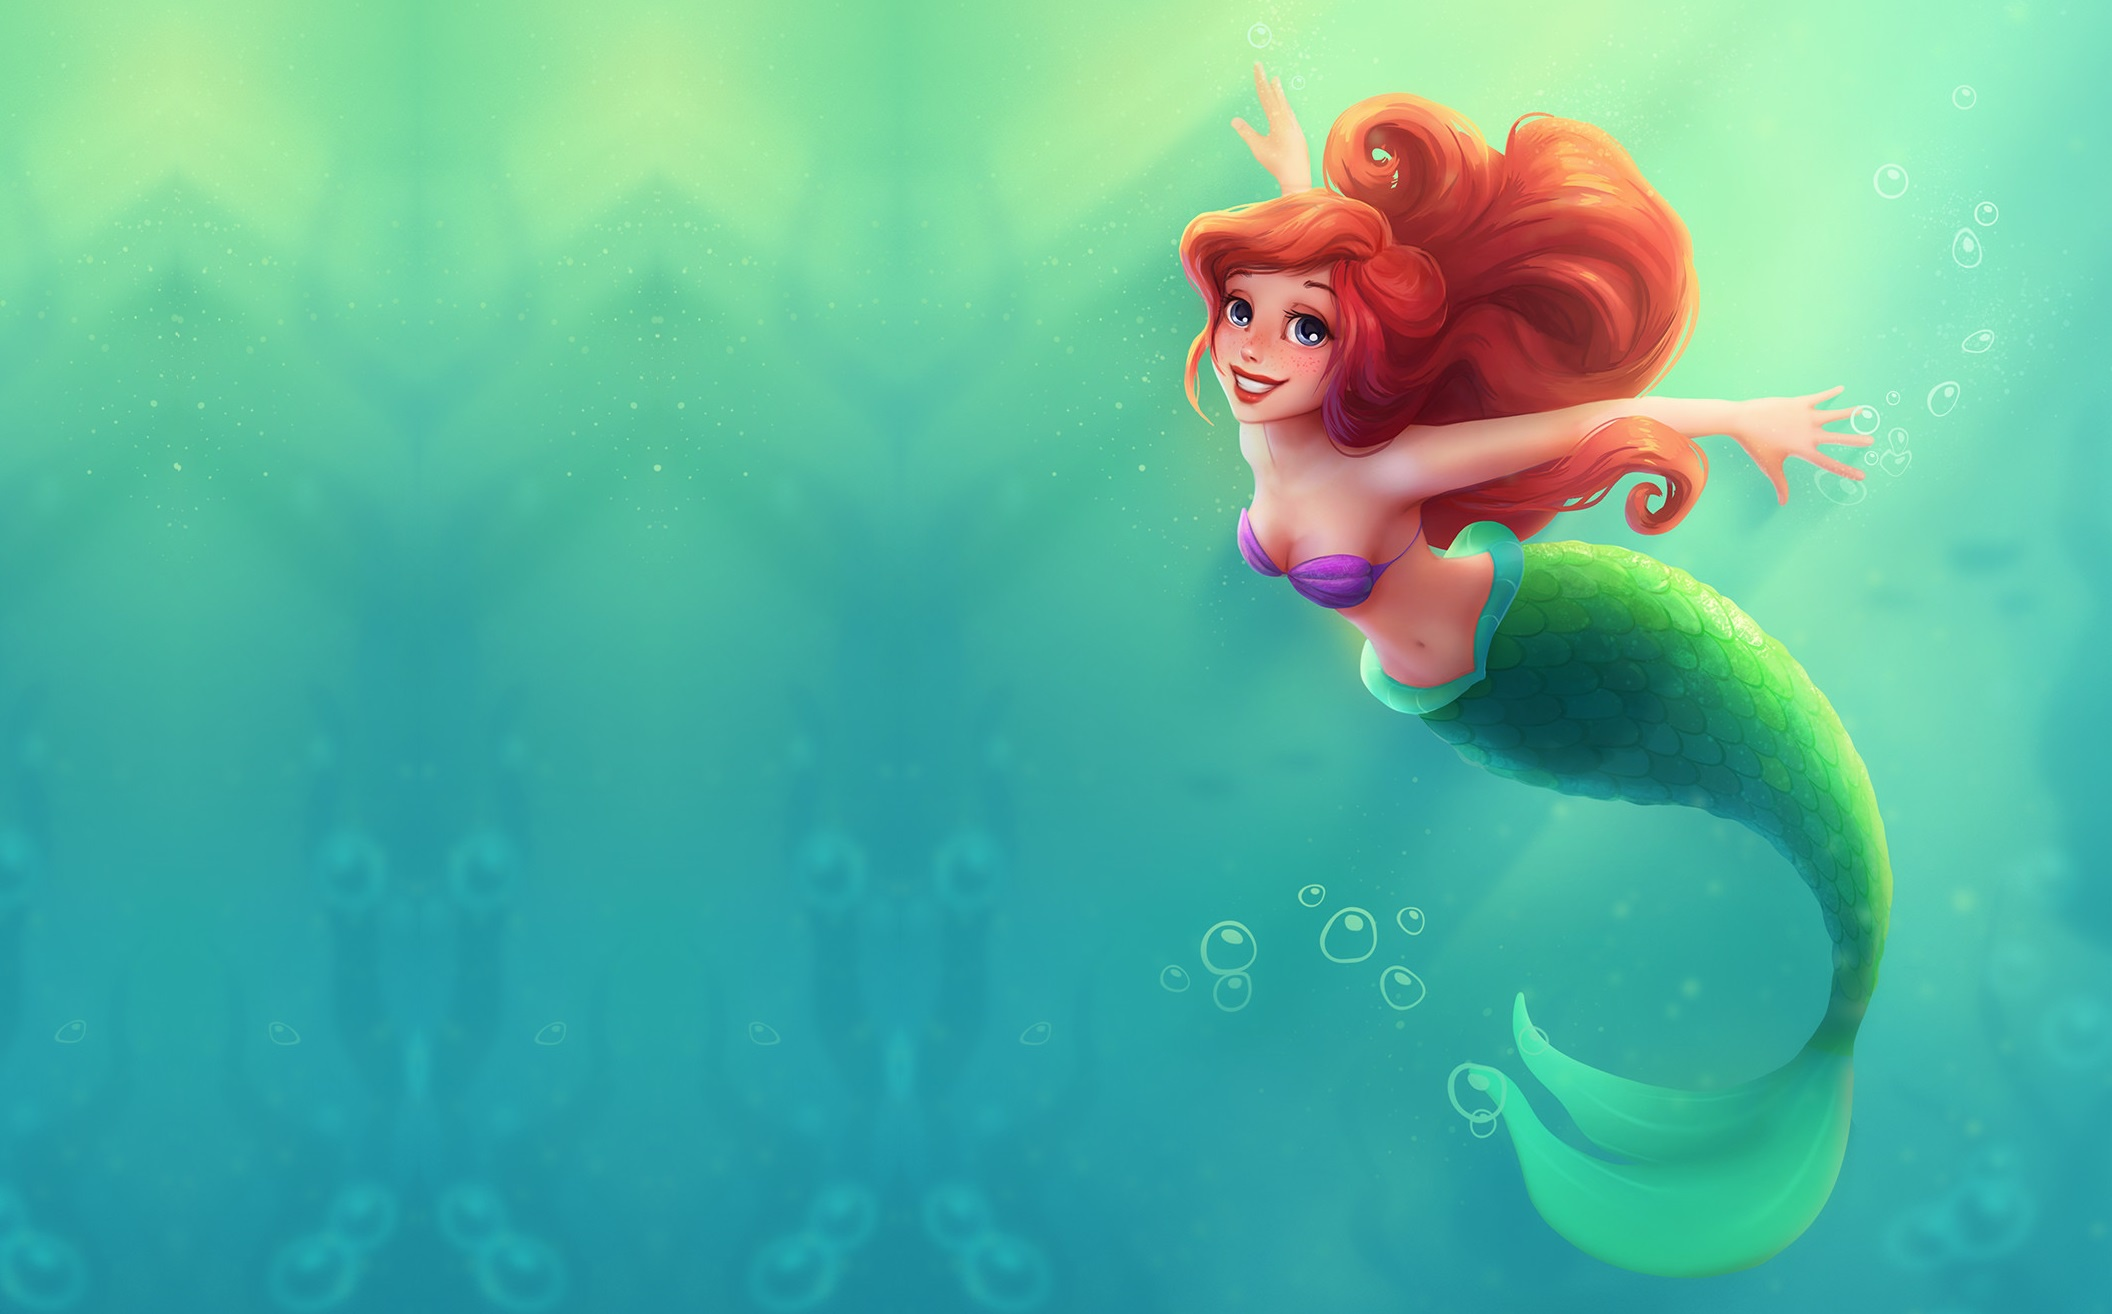 The Little Mermaid Hd Wallpaper Background Image